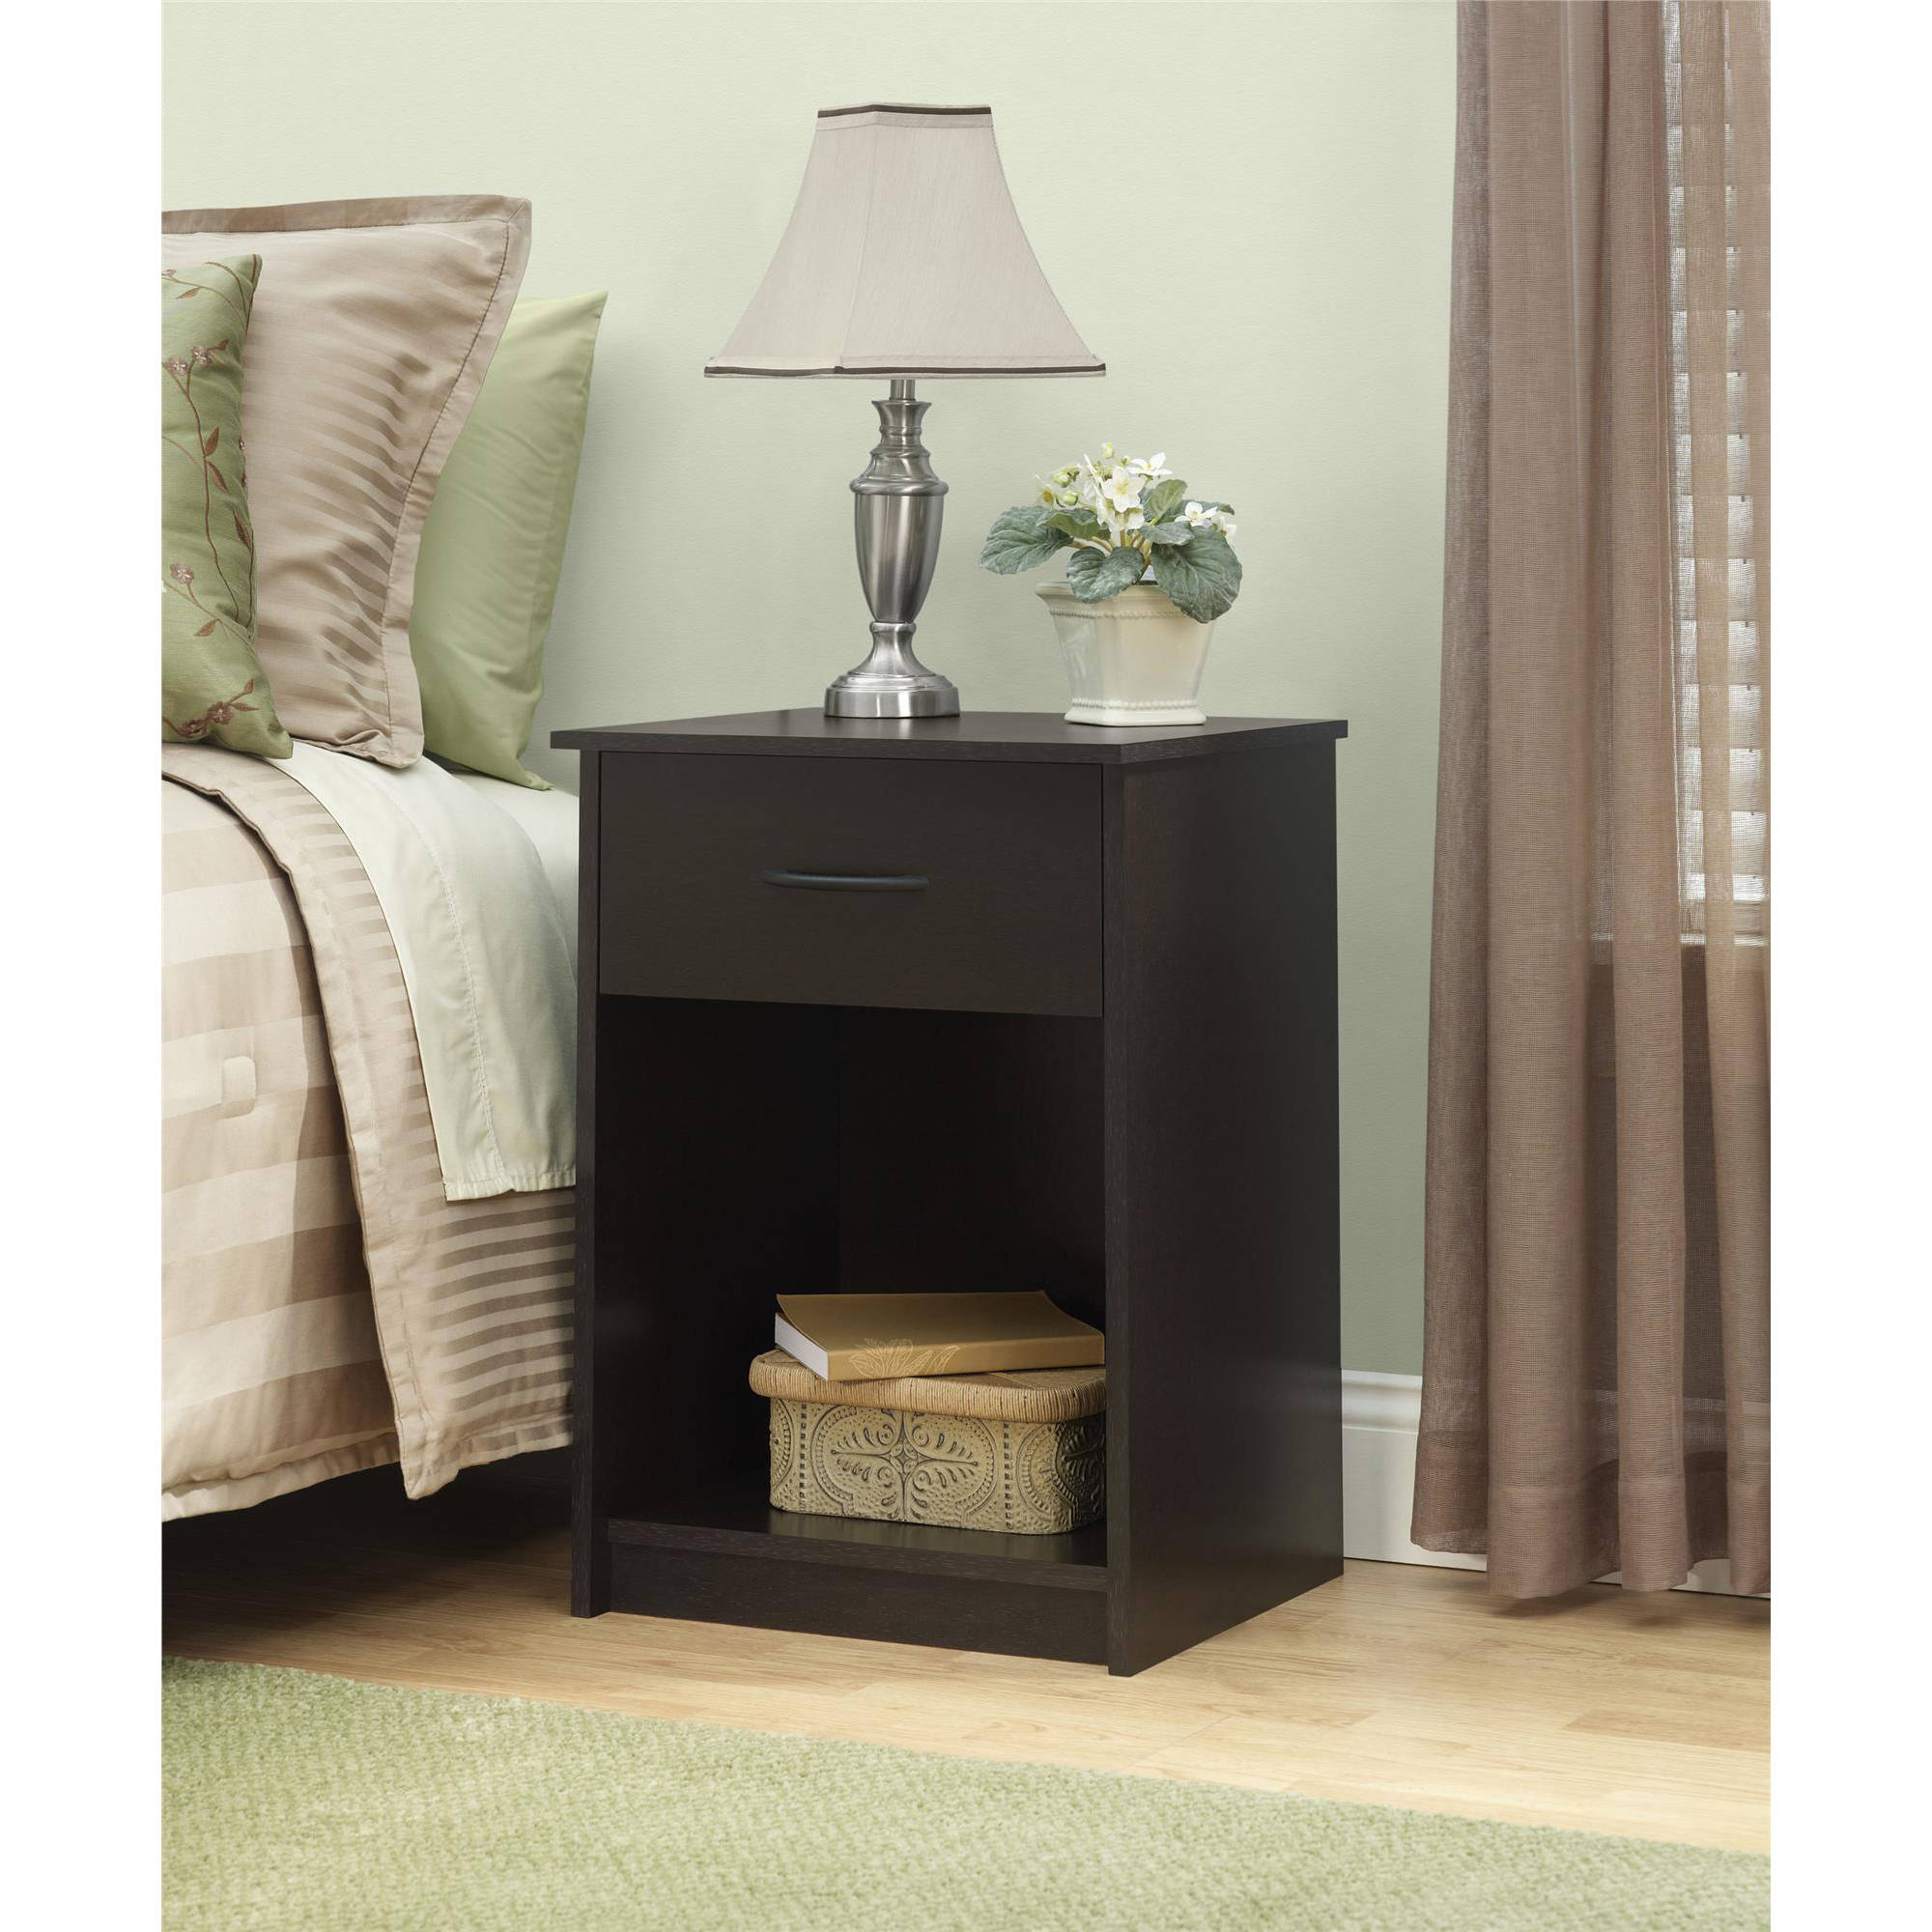 Mainstays Nightstand/End Table, Multiple Finishes